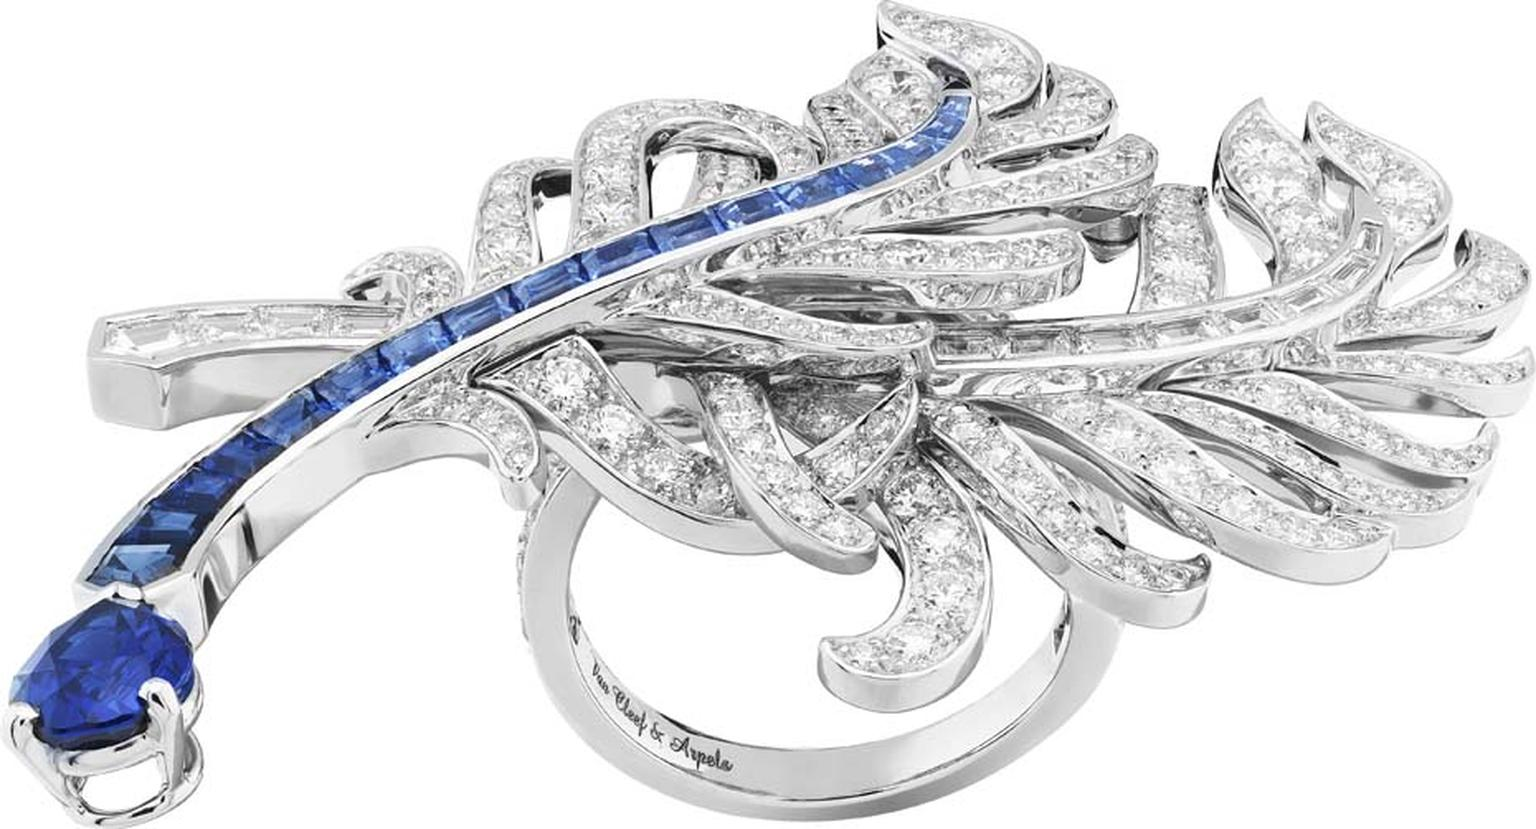 Van Cleef & Arpels Peau d'Âne collection white gold between the finer ring featuring round diamonds and baguette cut sapphires and a single pear shaped sapphire.